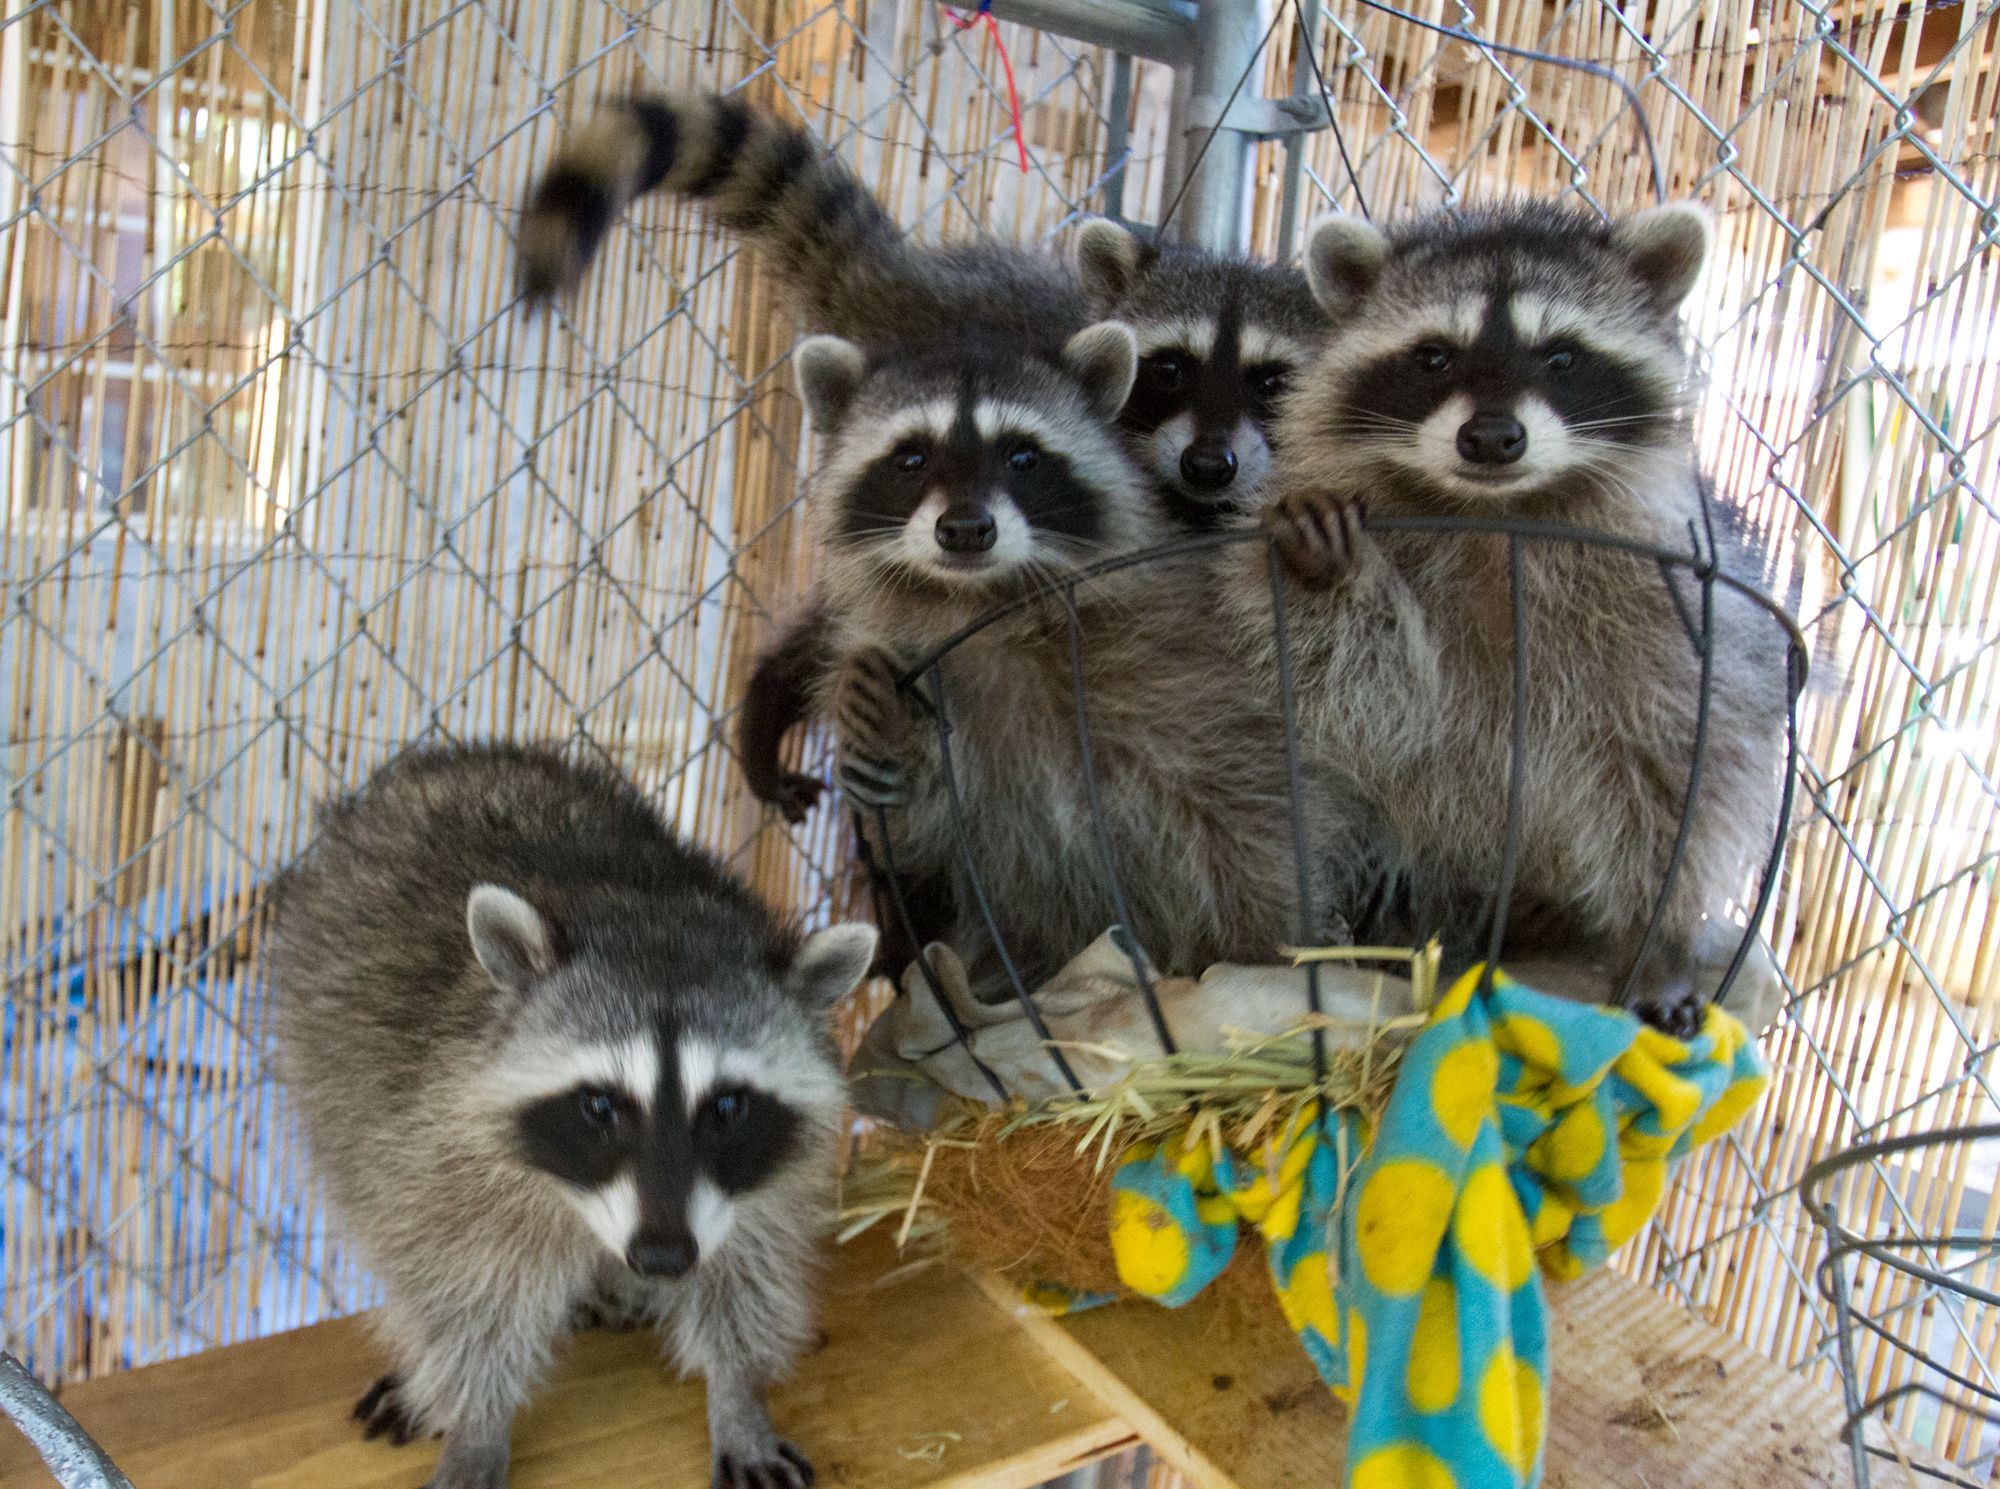 These five unrelated orphaned raccoons are being cared for